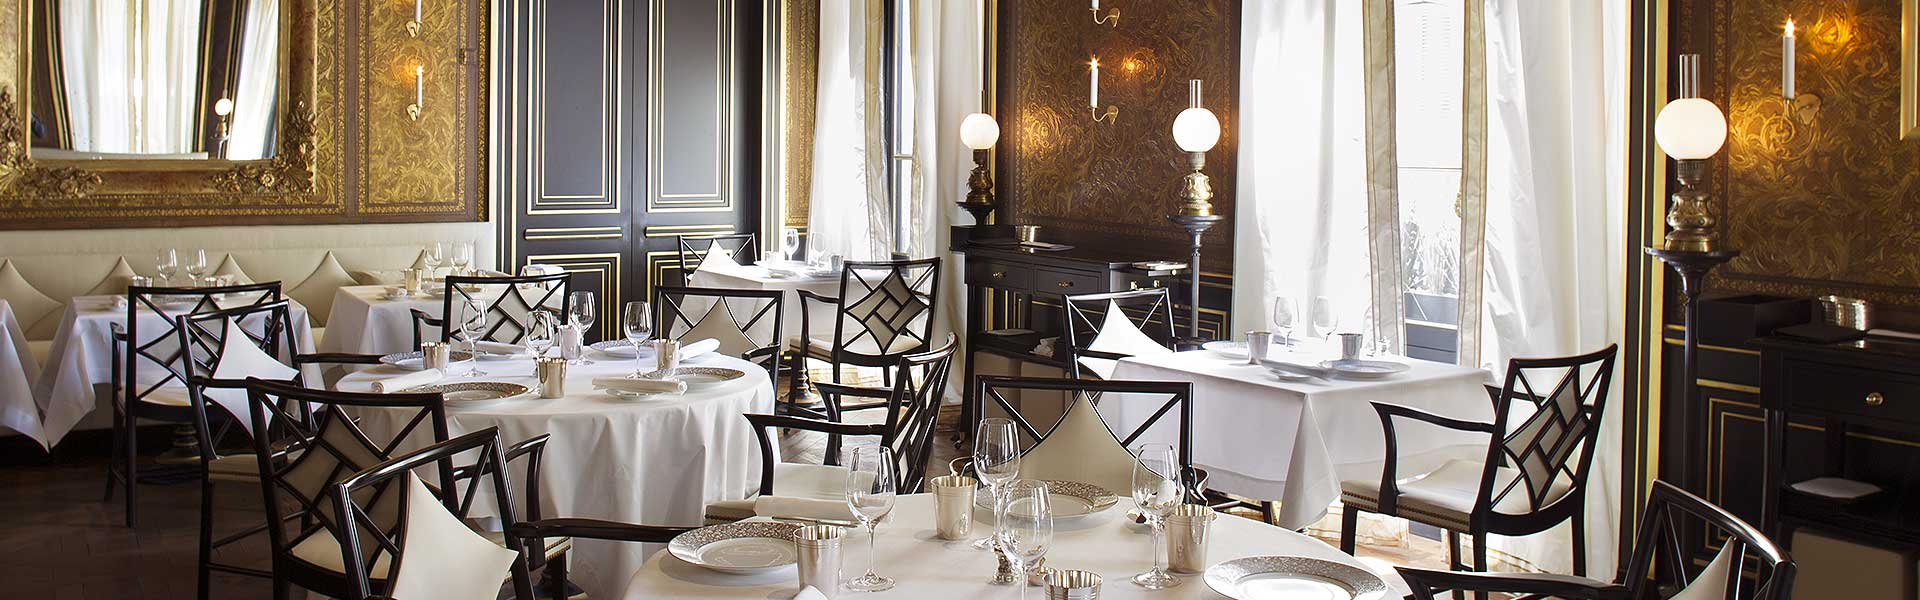 restaurant le gabriel at la reserve paris haute grandeur. Black Bedroom Furniture Sets. Home Design Ideas